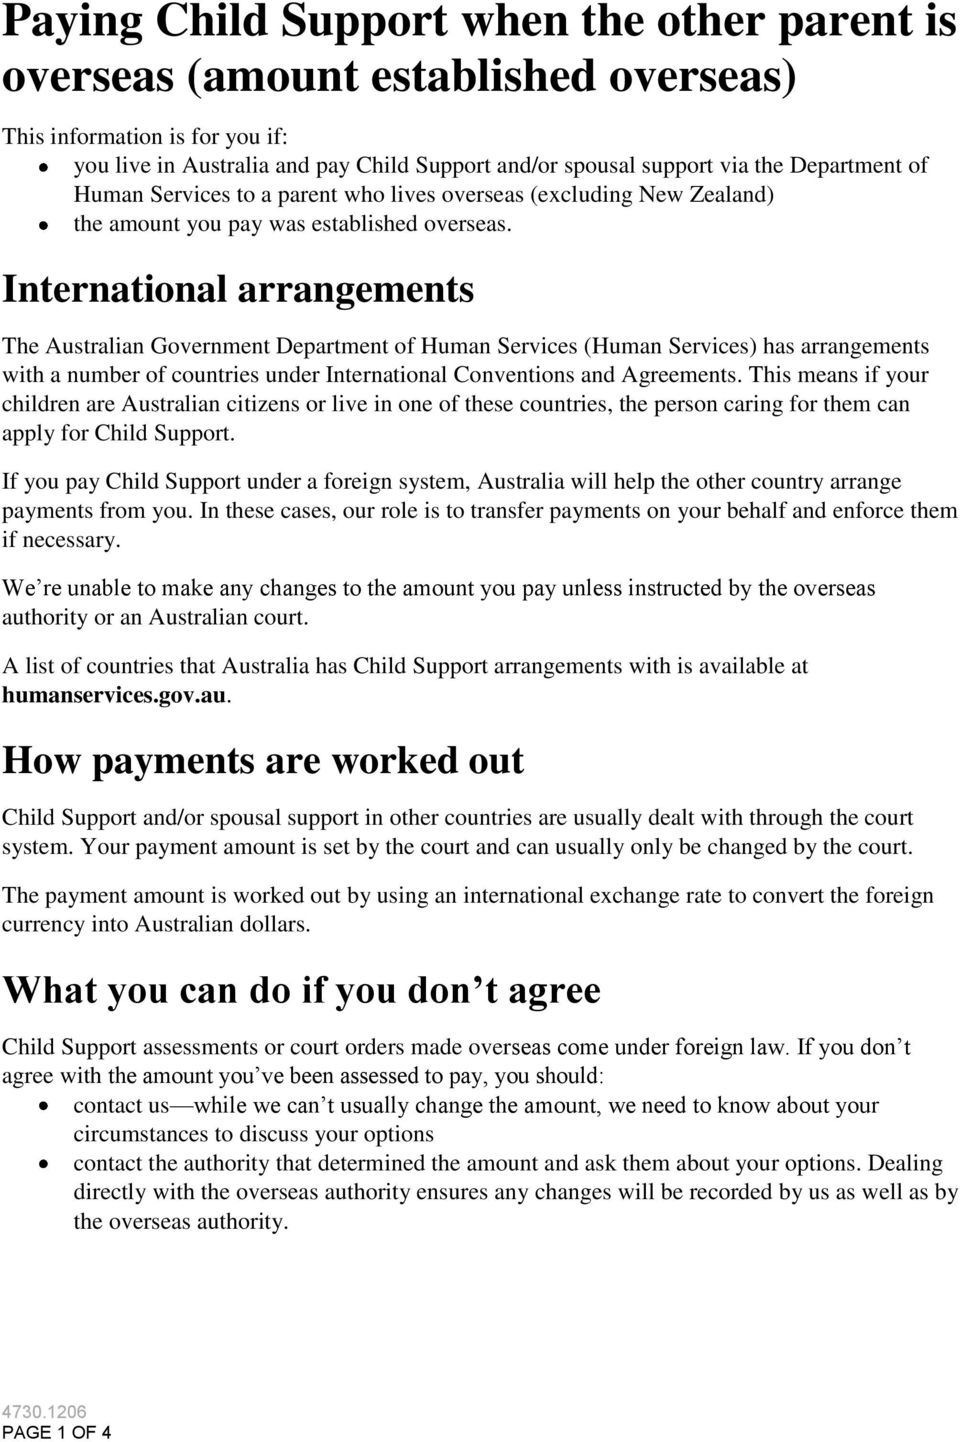 International arrangements The Australian Government (Human Services) has arrangements with a number of countries under International Conventions and Agreements.